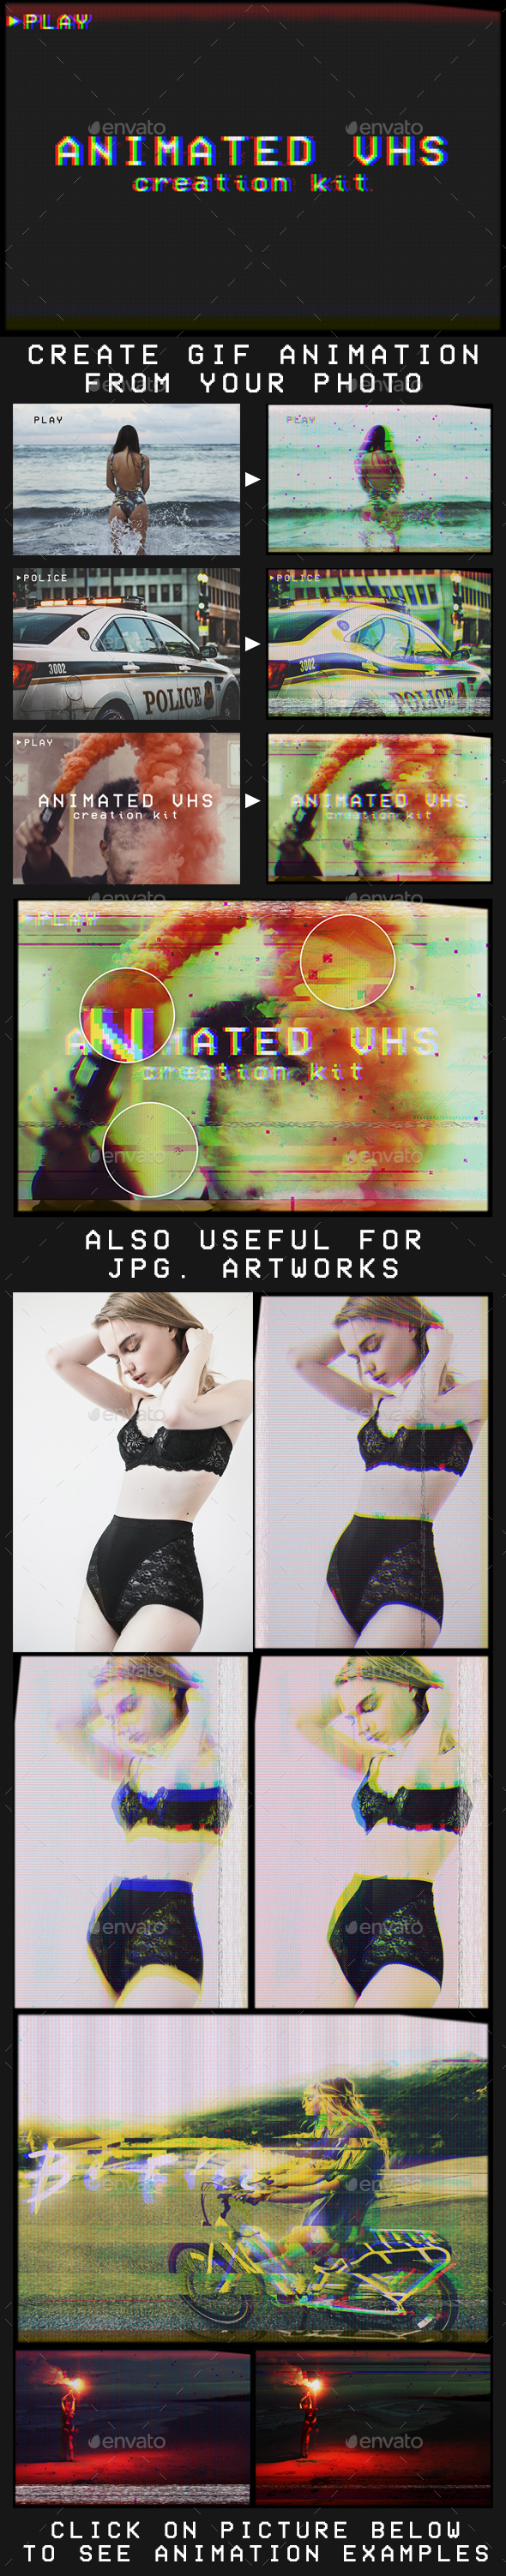 Animated VHS Creation Kit - Artistic Photo Templates